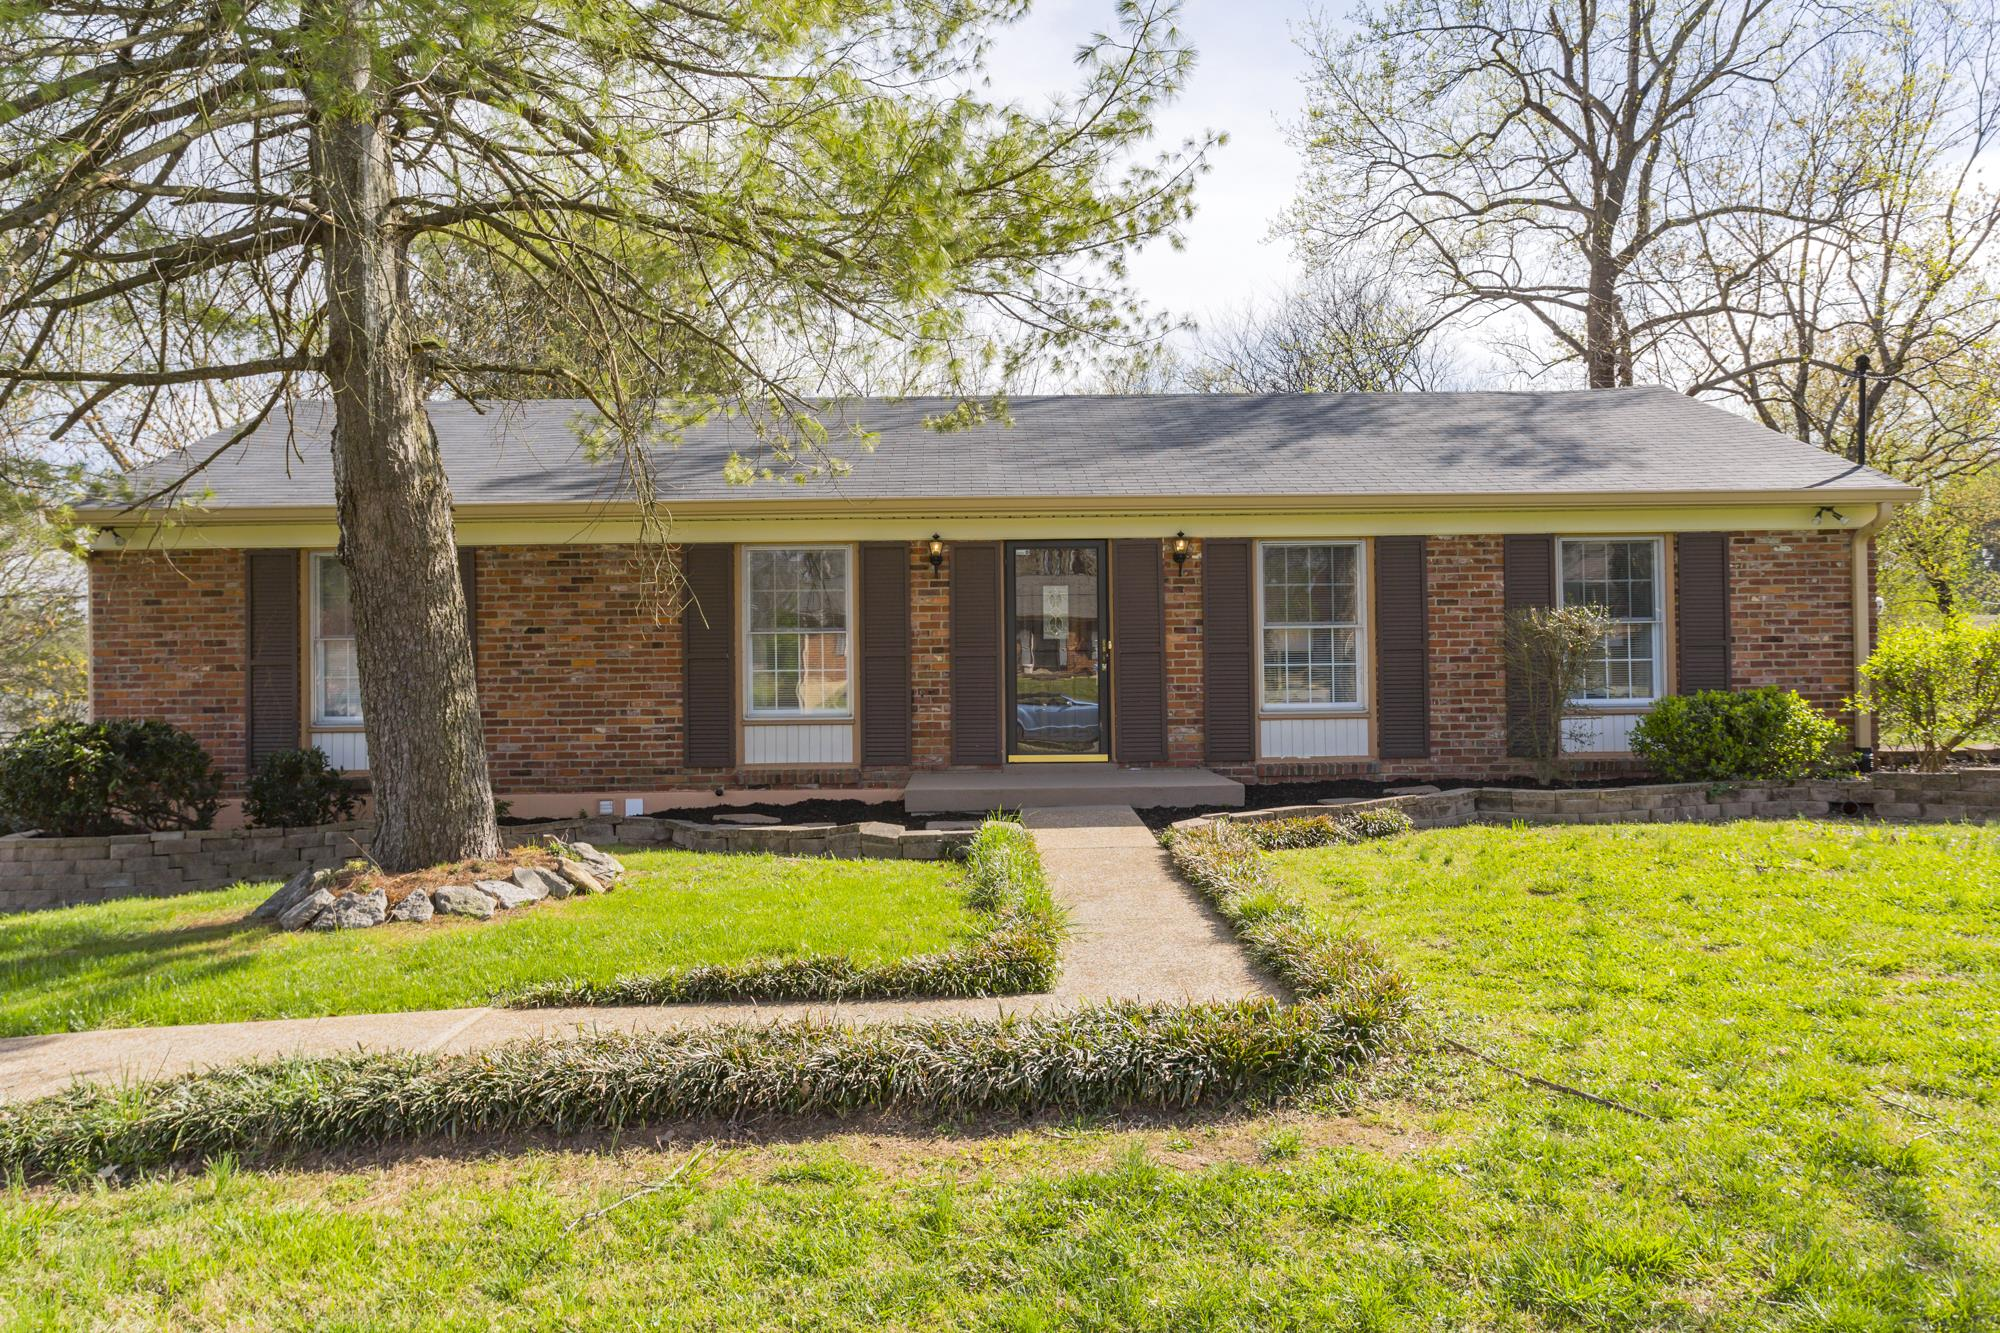 203 Garrett Dr, Crieve Hill, Tennessee 4 Bedroom as one of Homes & Land Real Estate